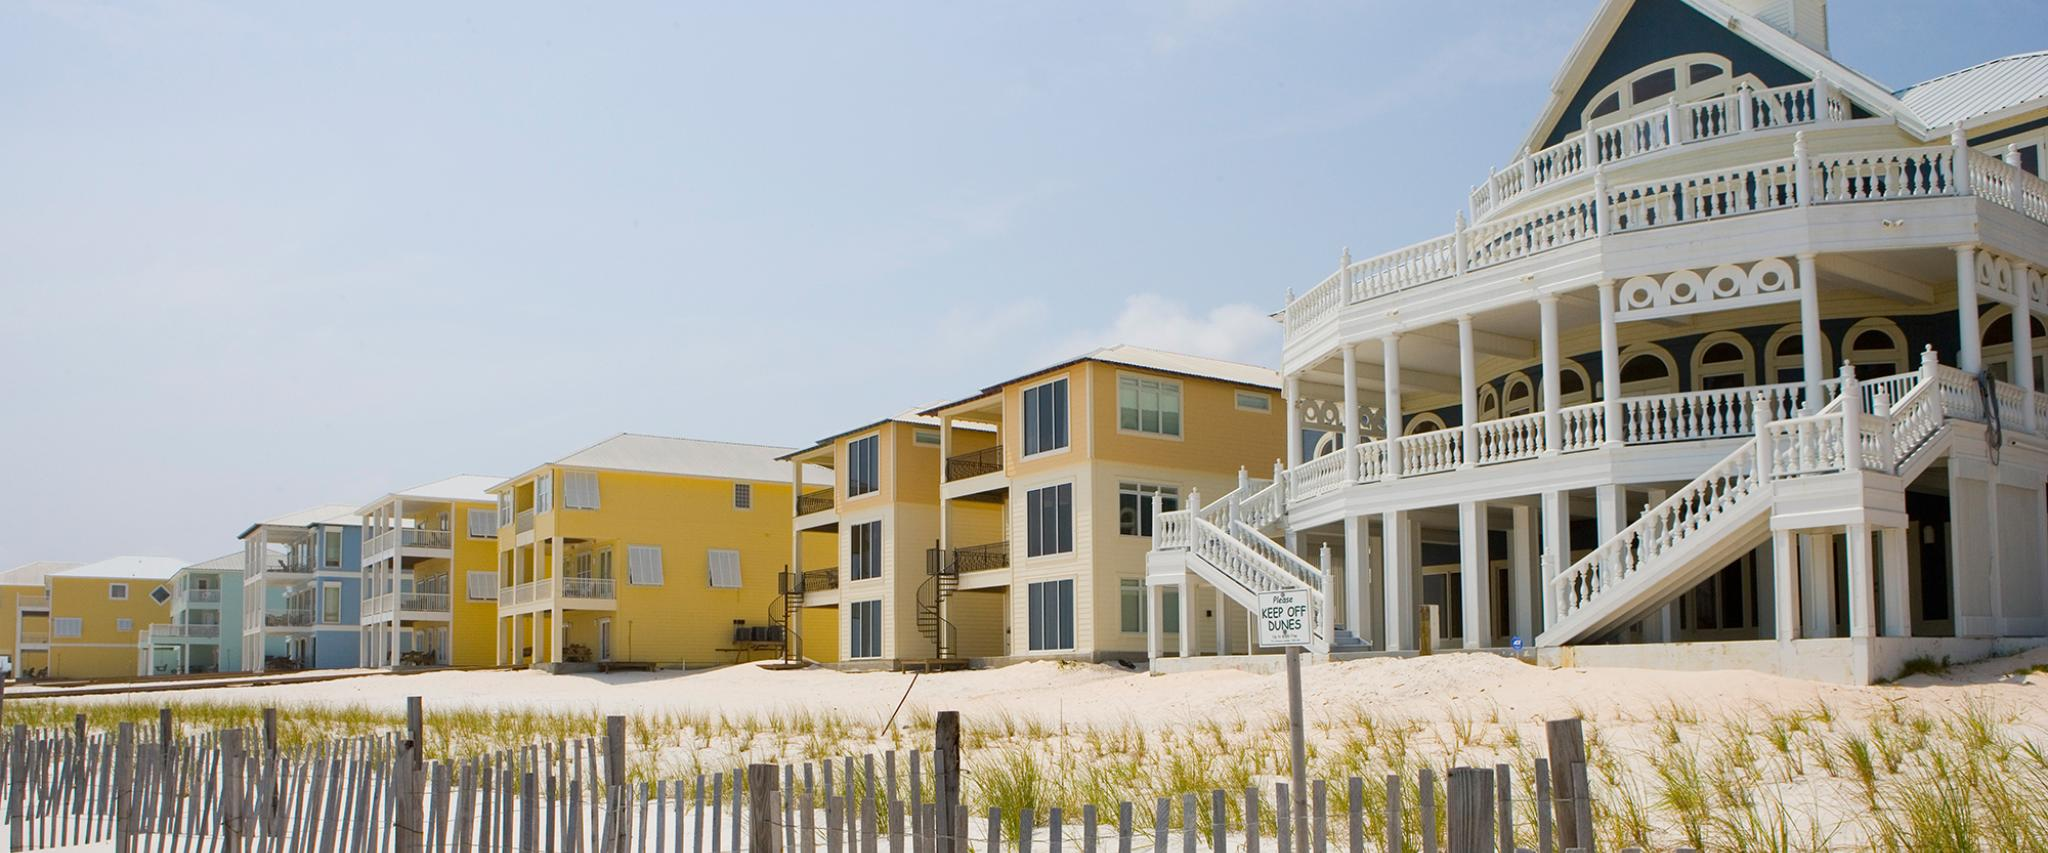 Beach Houses Orange Beach